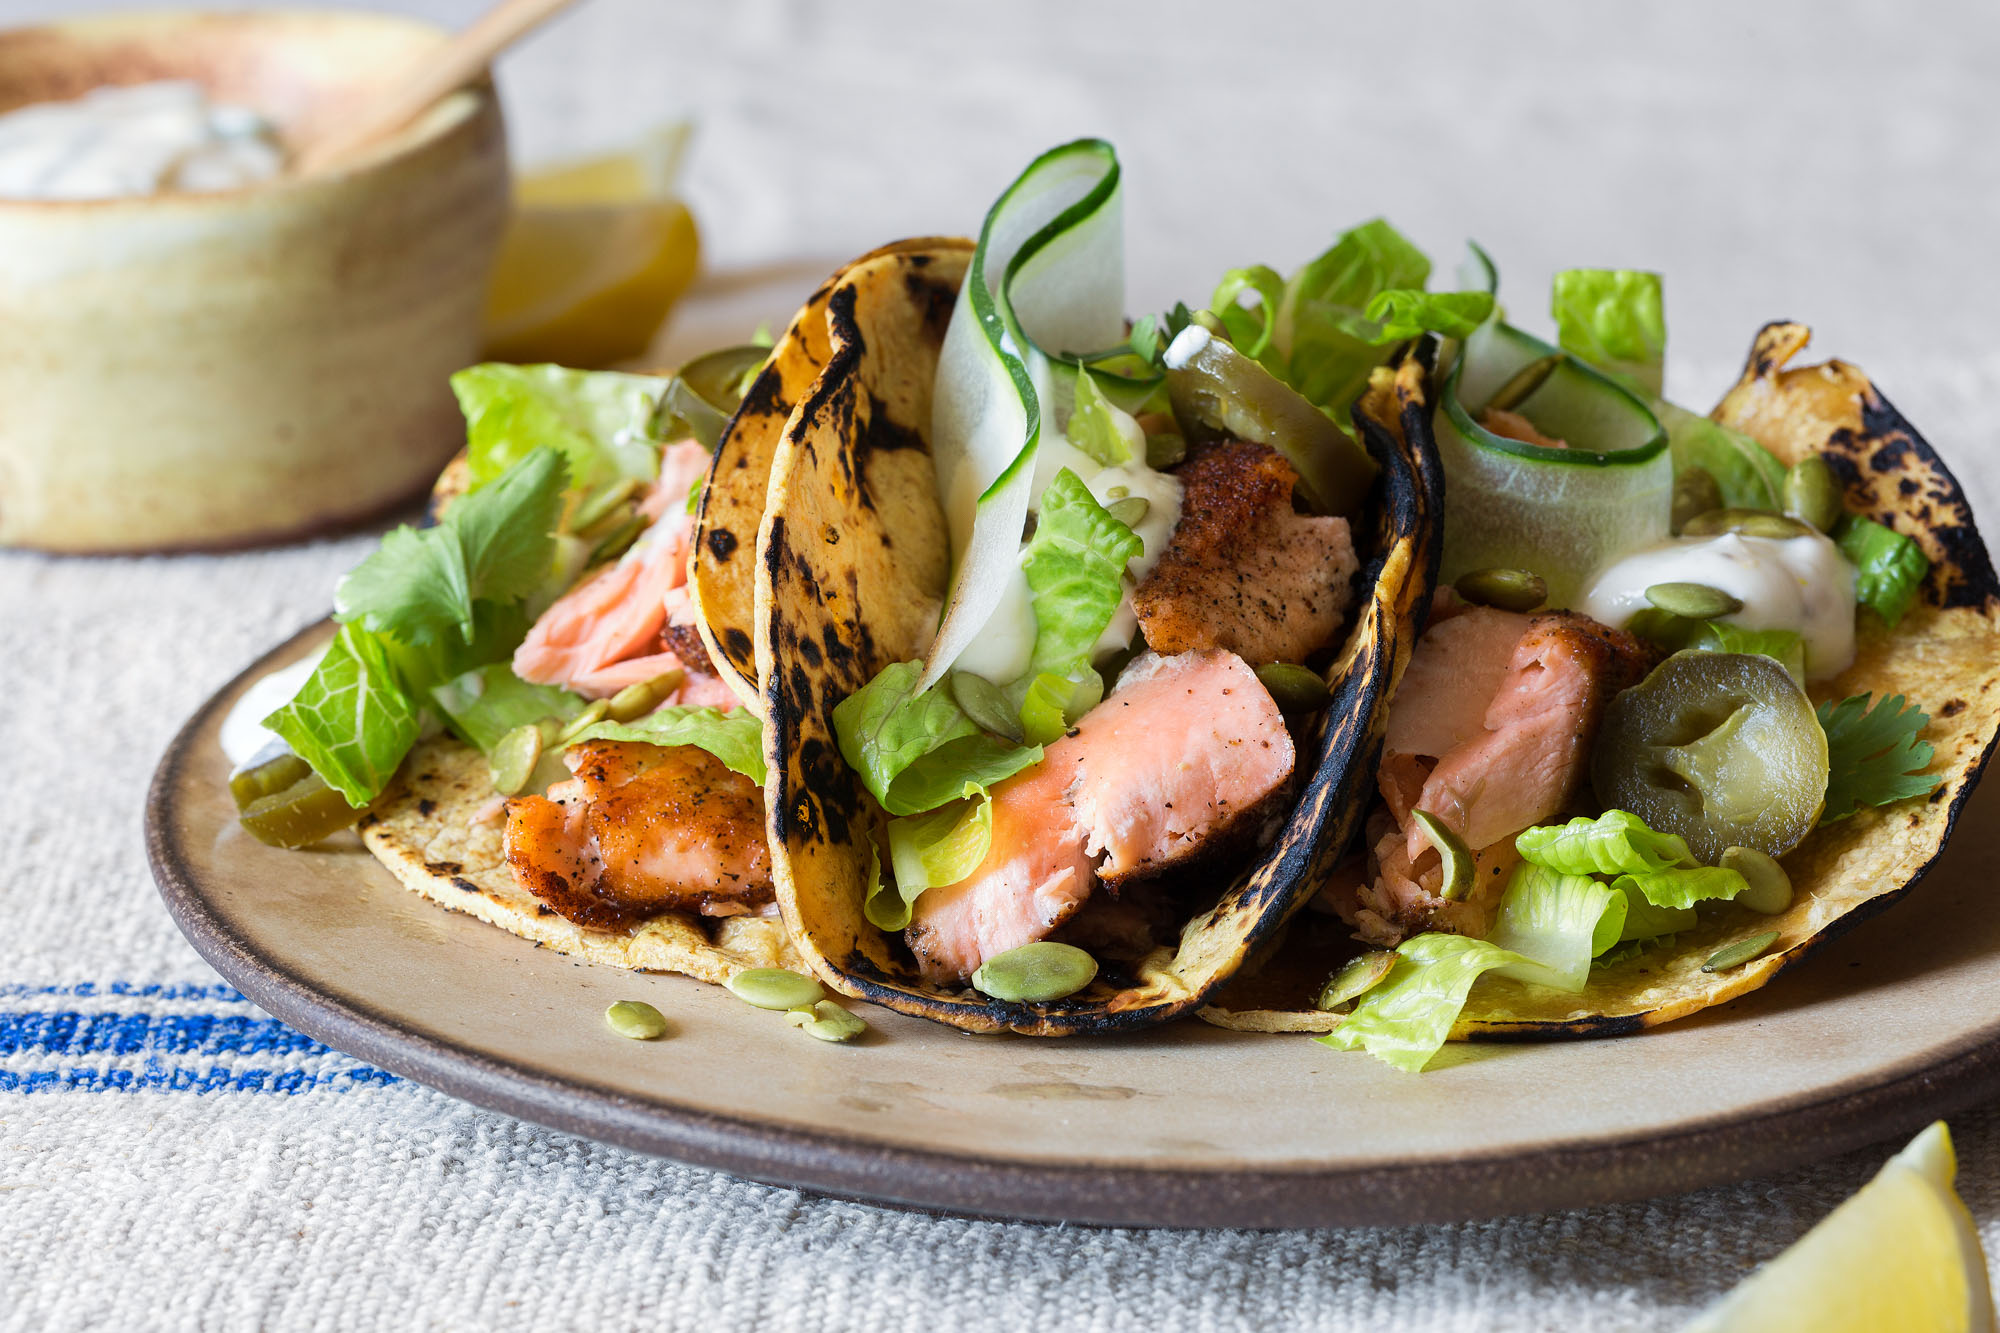 S133_Five-Spice Salmon Tacos Lemon-Mint Yogurt (Couples)_Menu-Page.jpg